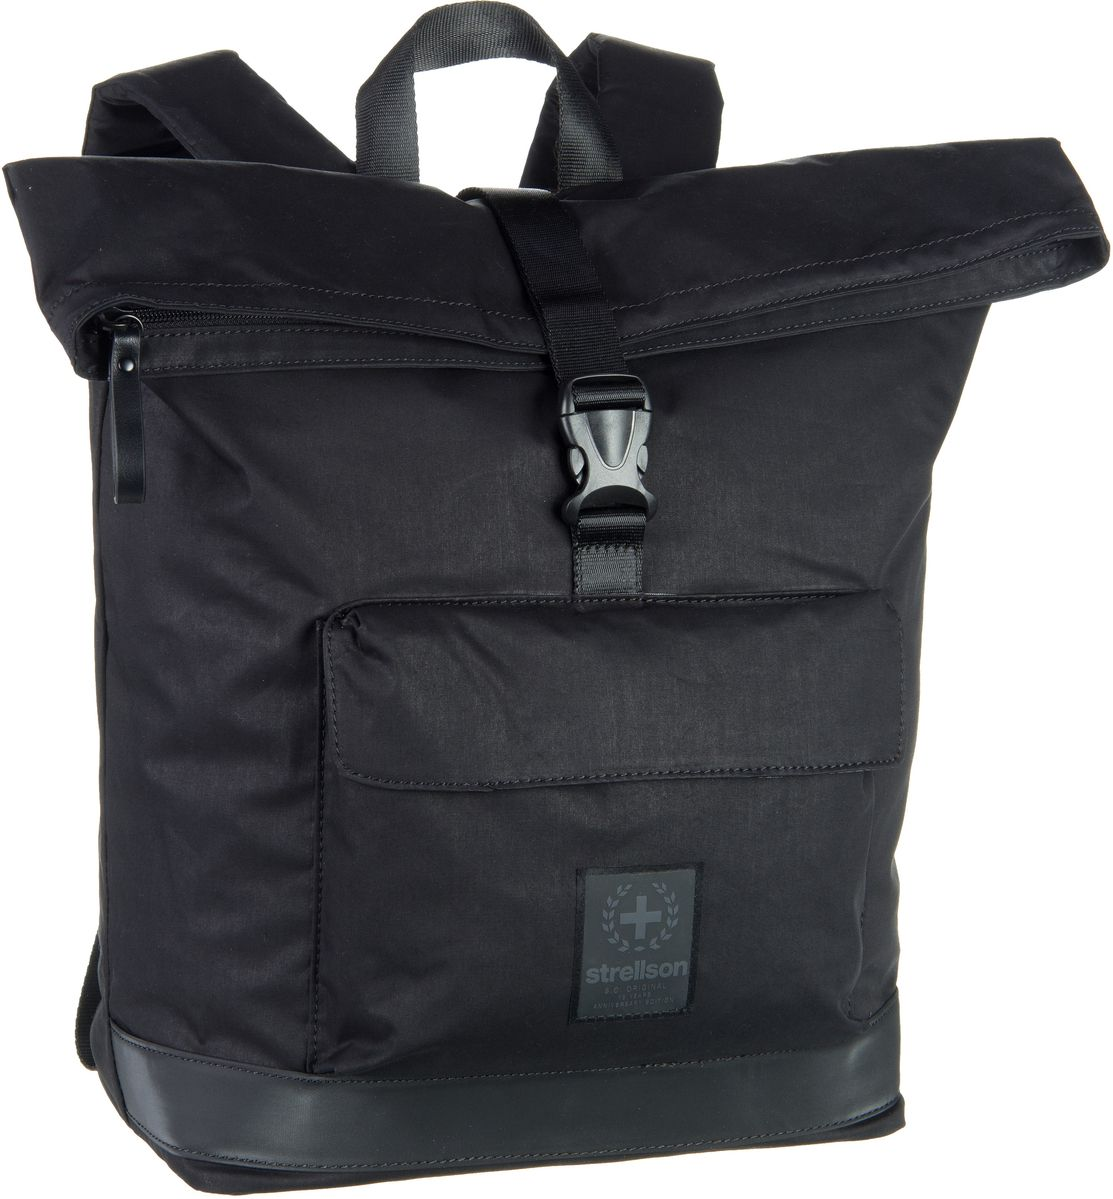 Rucksack / Daypack Swiss Cross Backpack SVZ Black